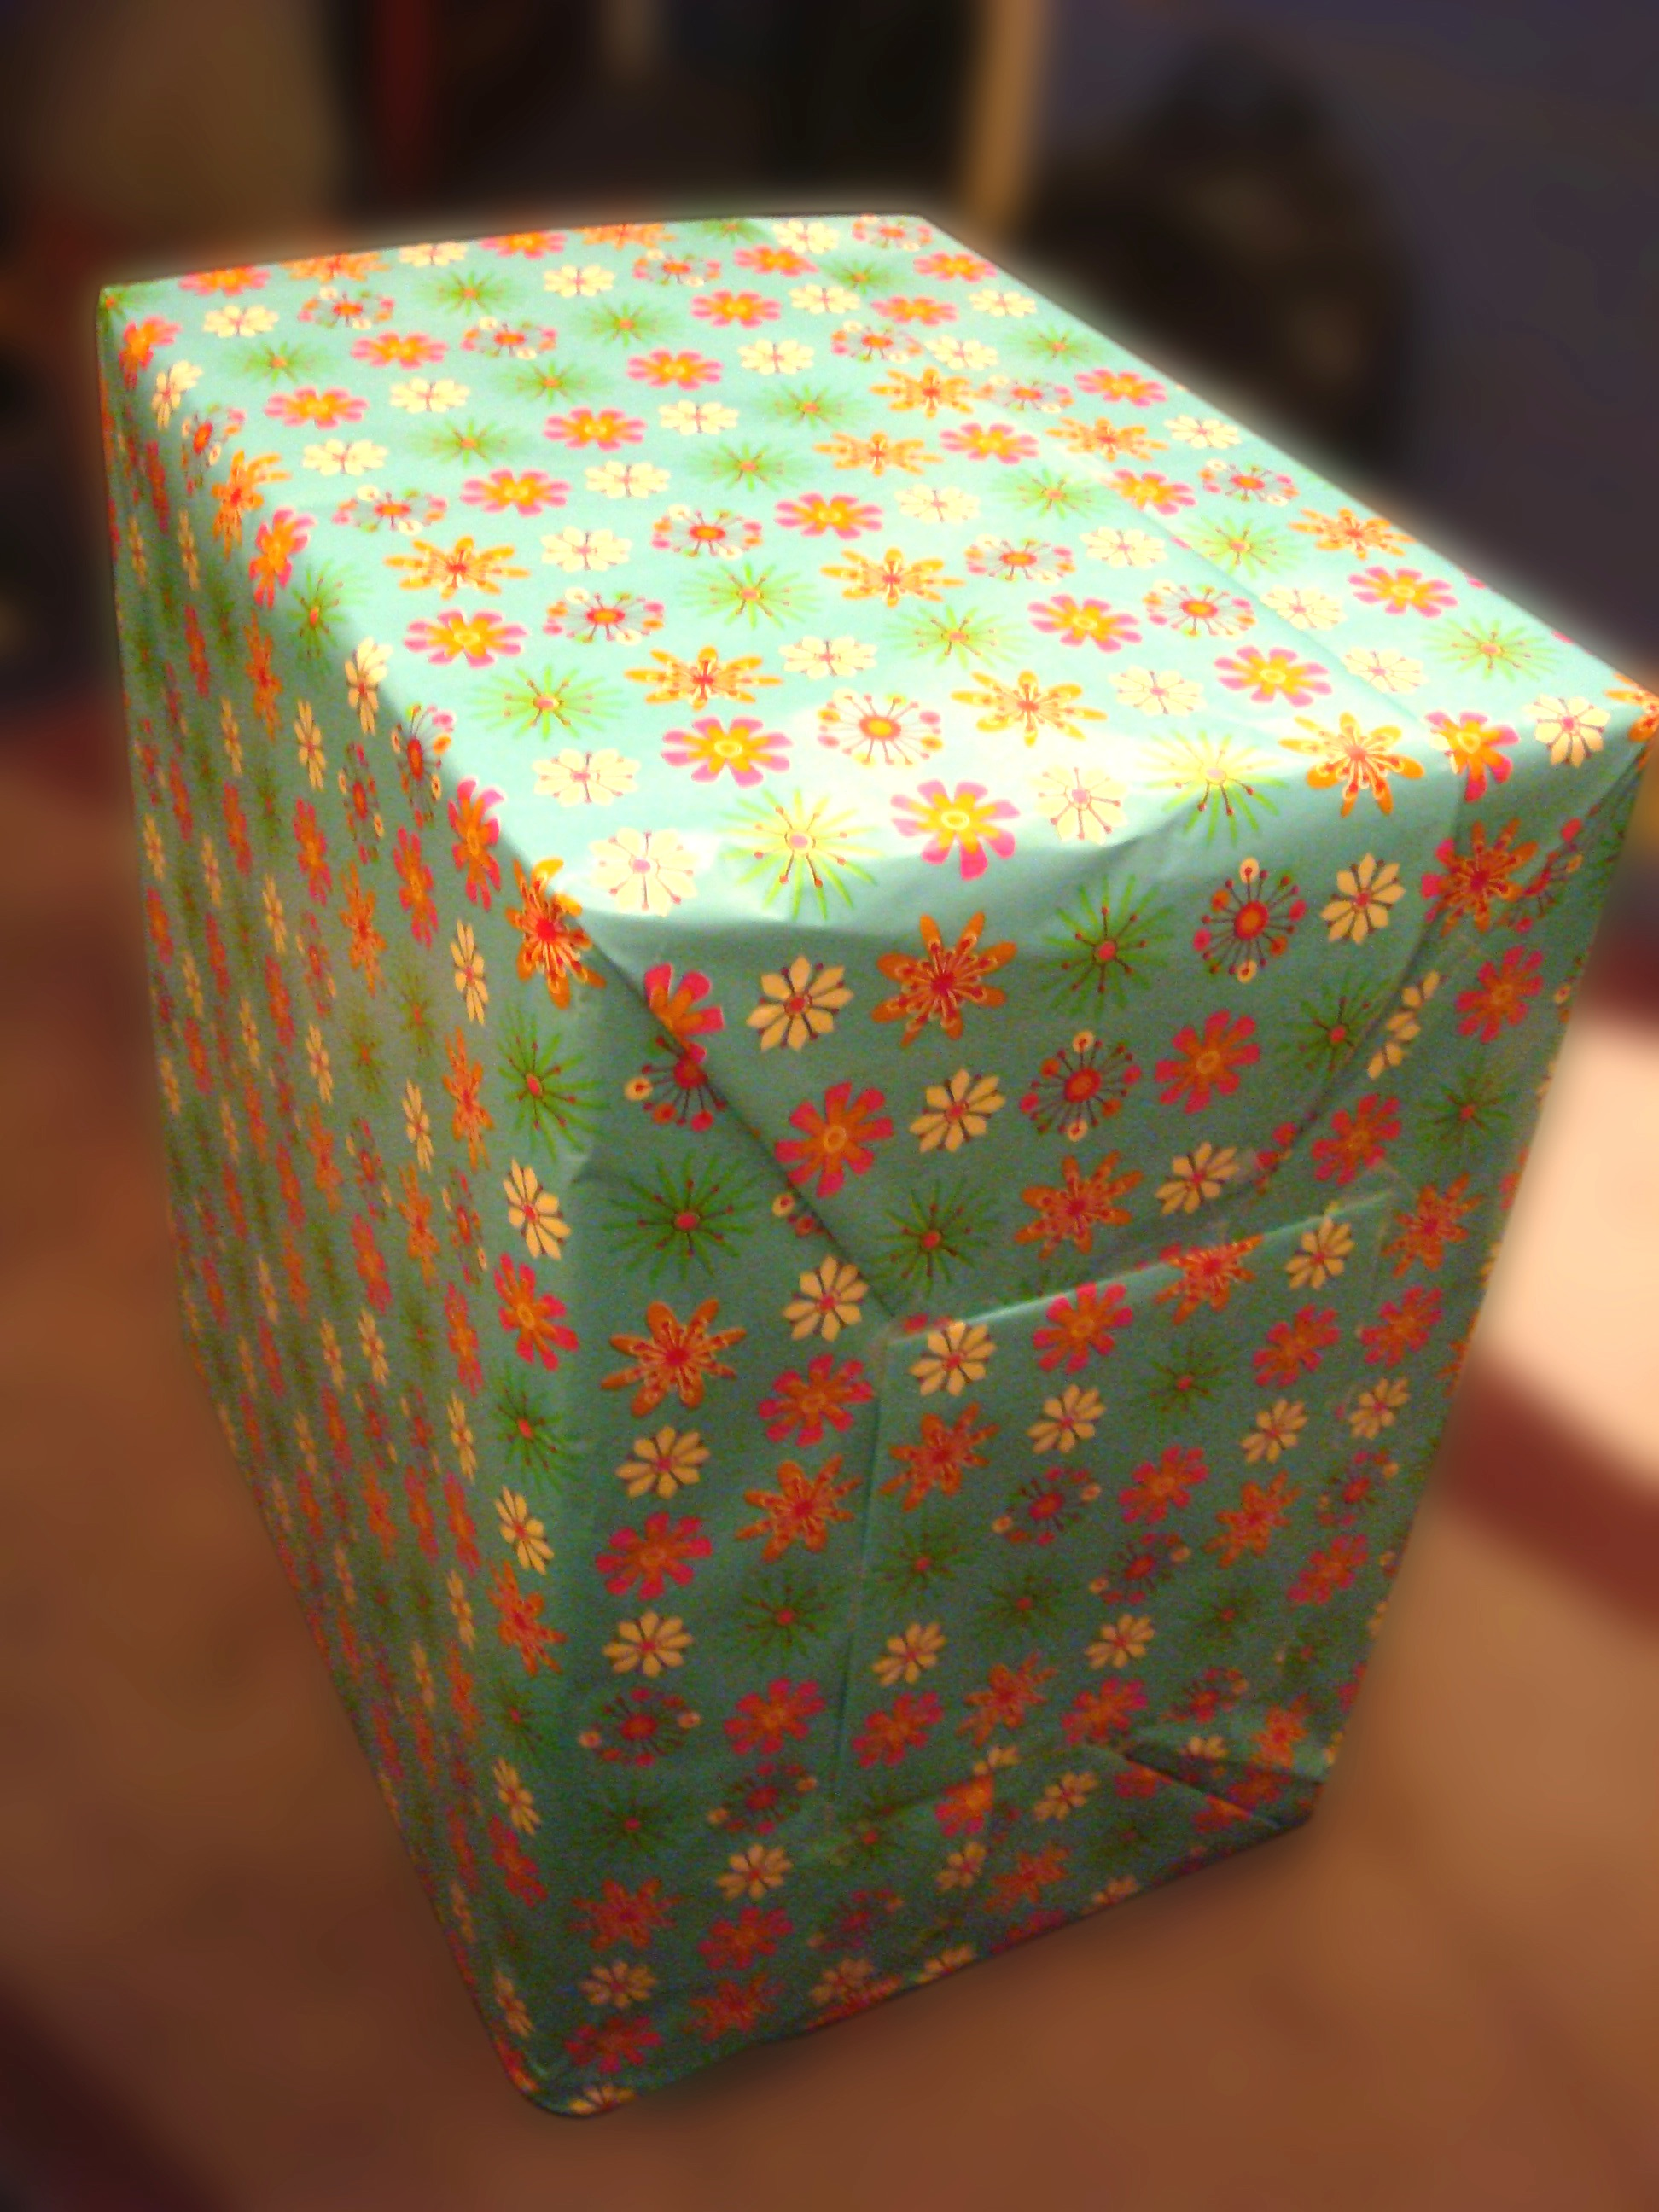 Exploding Booby Trap Gift Box: 4 Steps